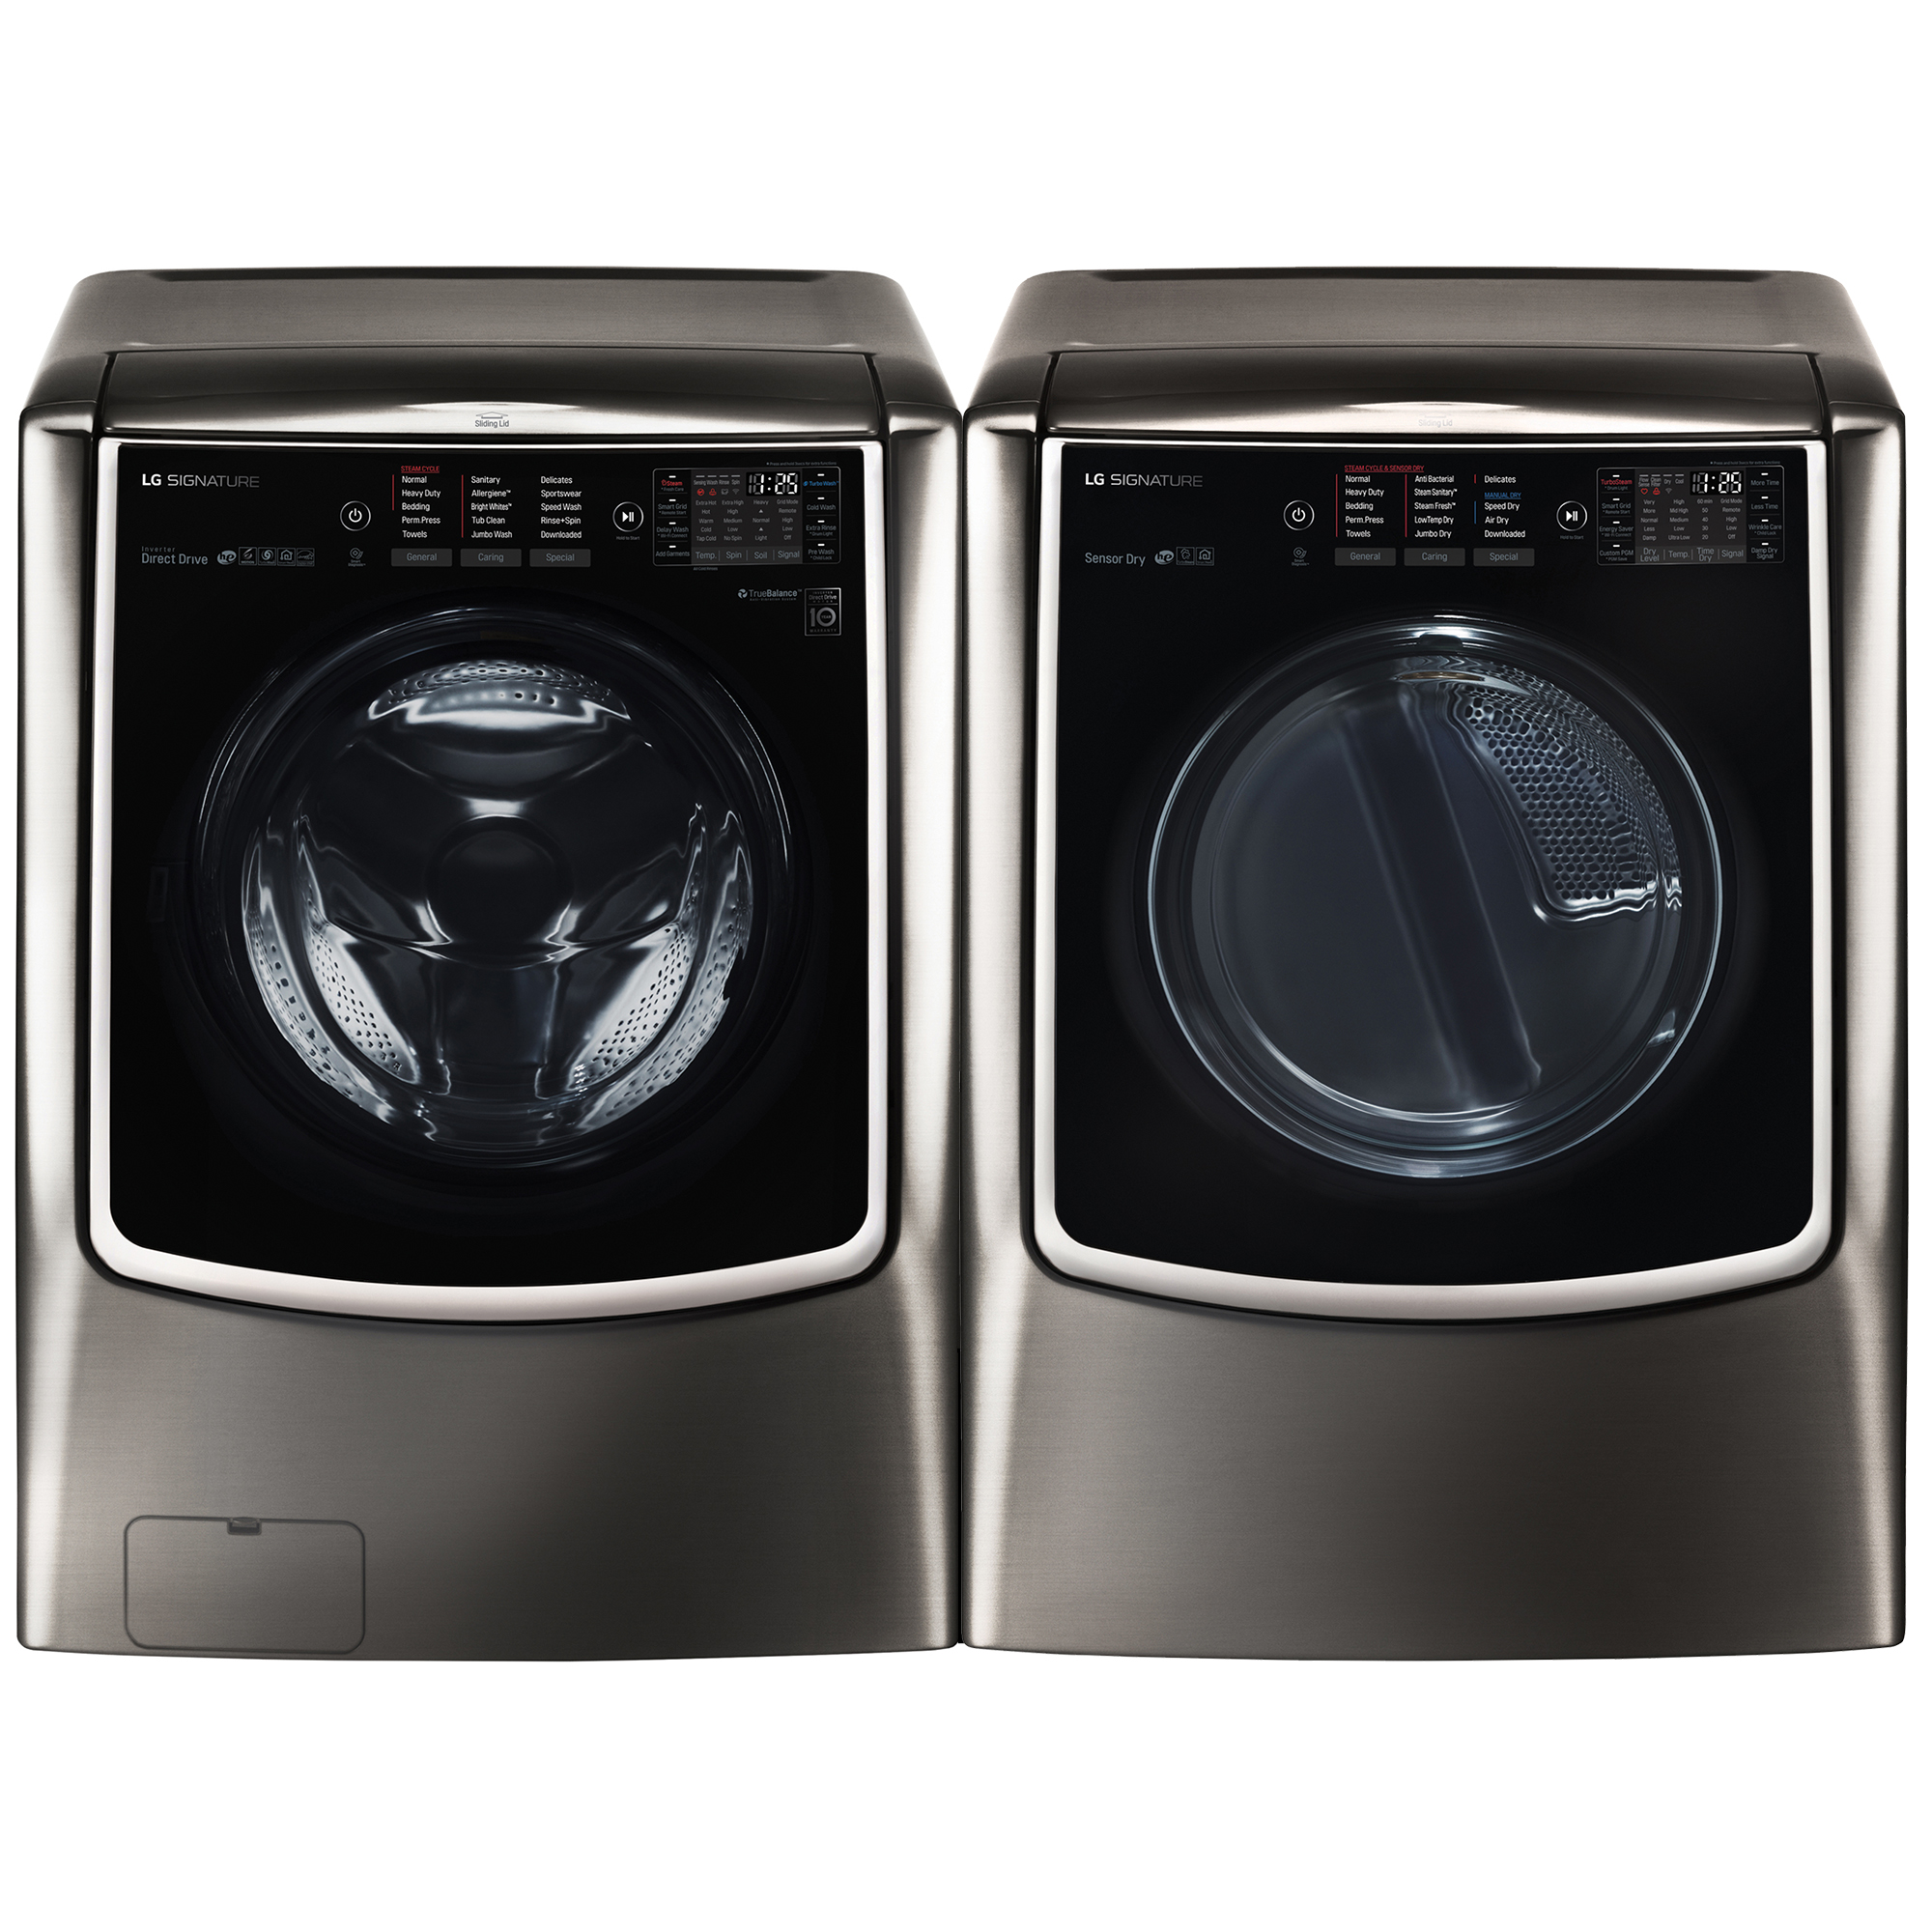 5.8 cu.ft. Front Load Washer w/TurboWash® & 9.0 cu.ft. Dryer w/TurboSteam Bundle Black Stainless